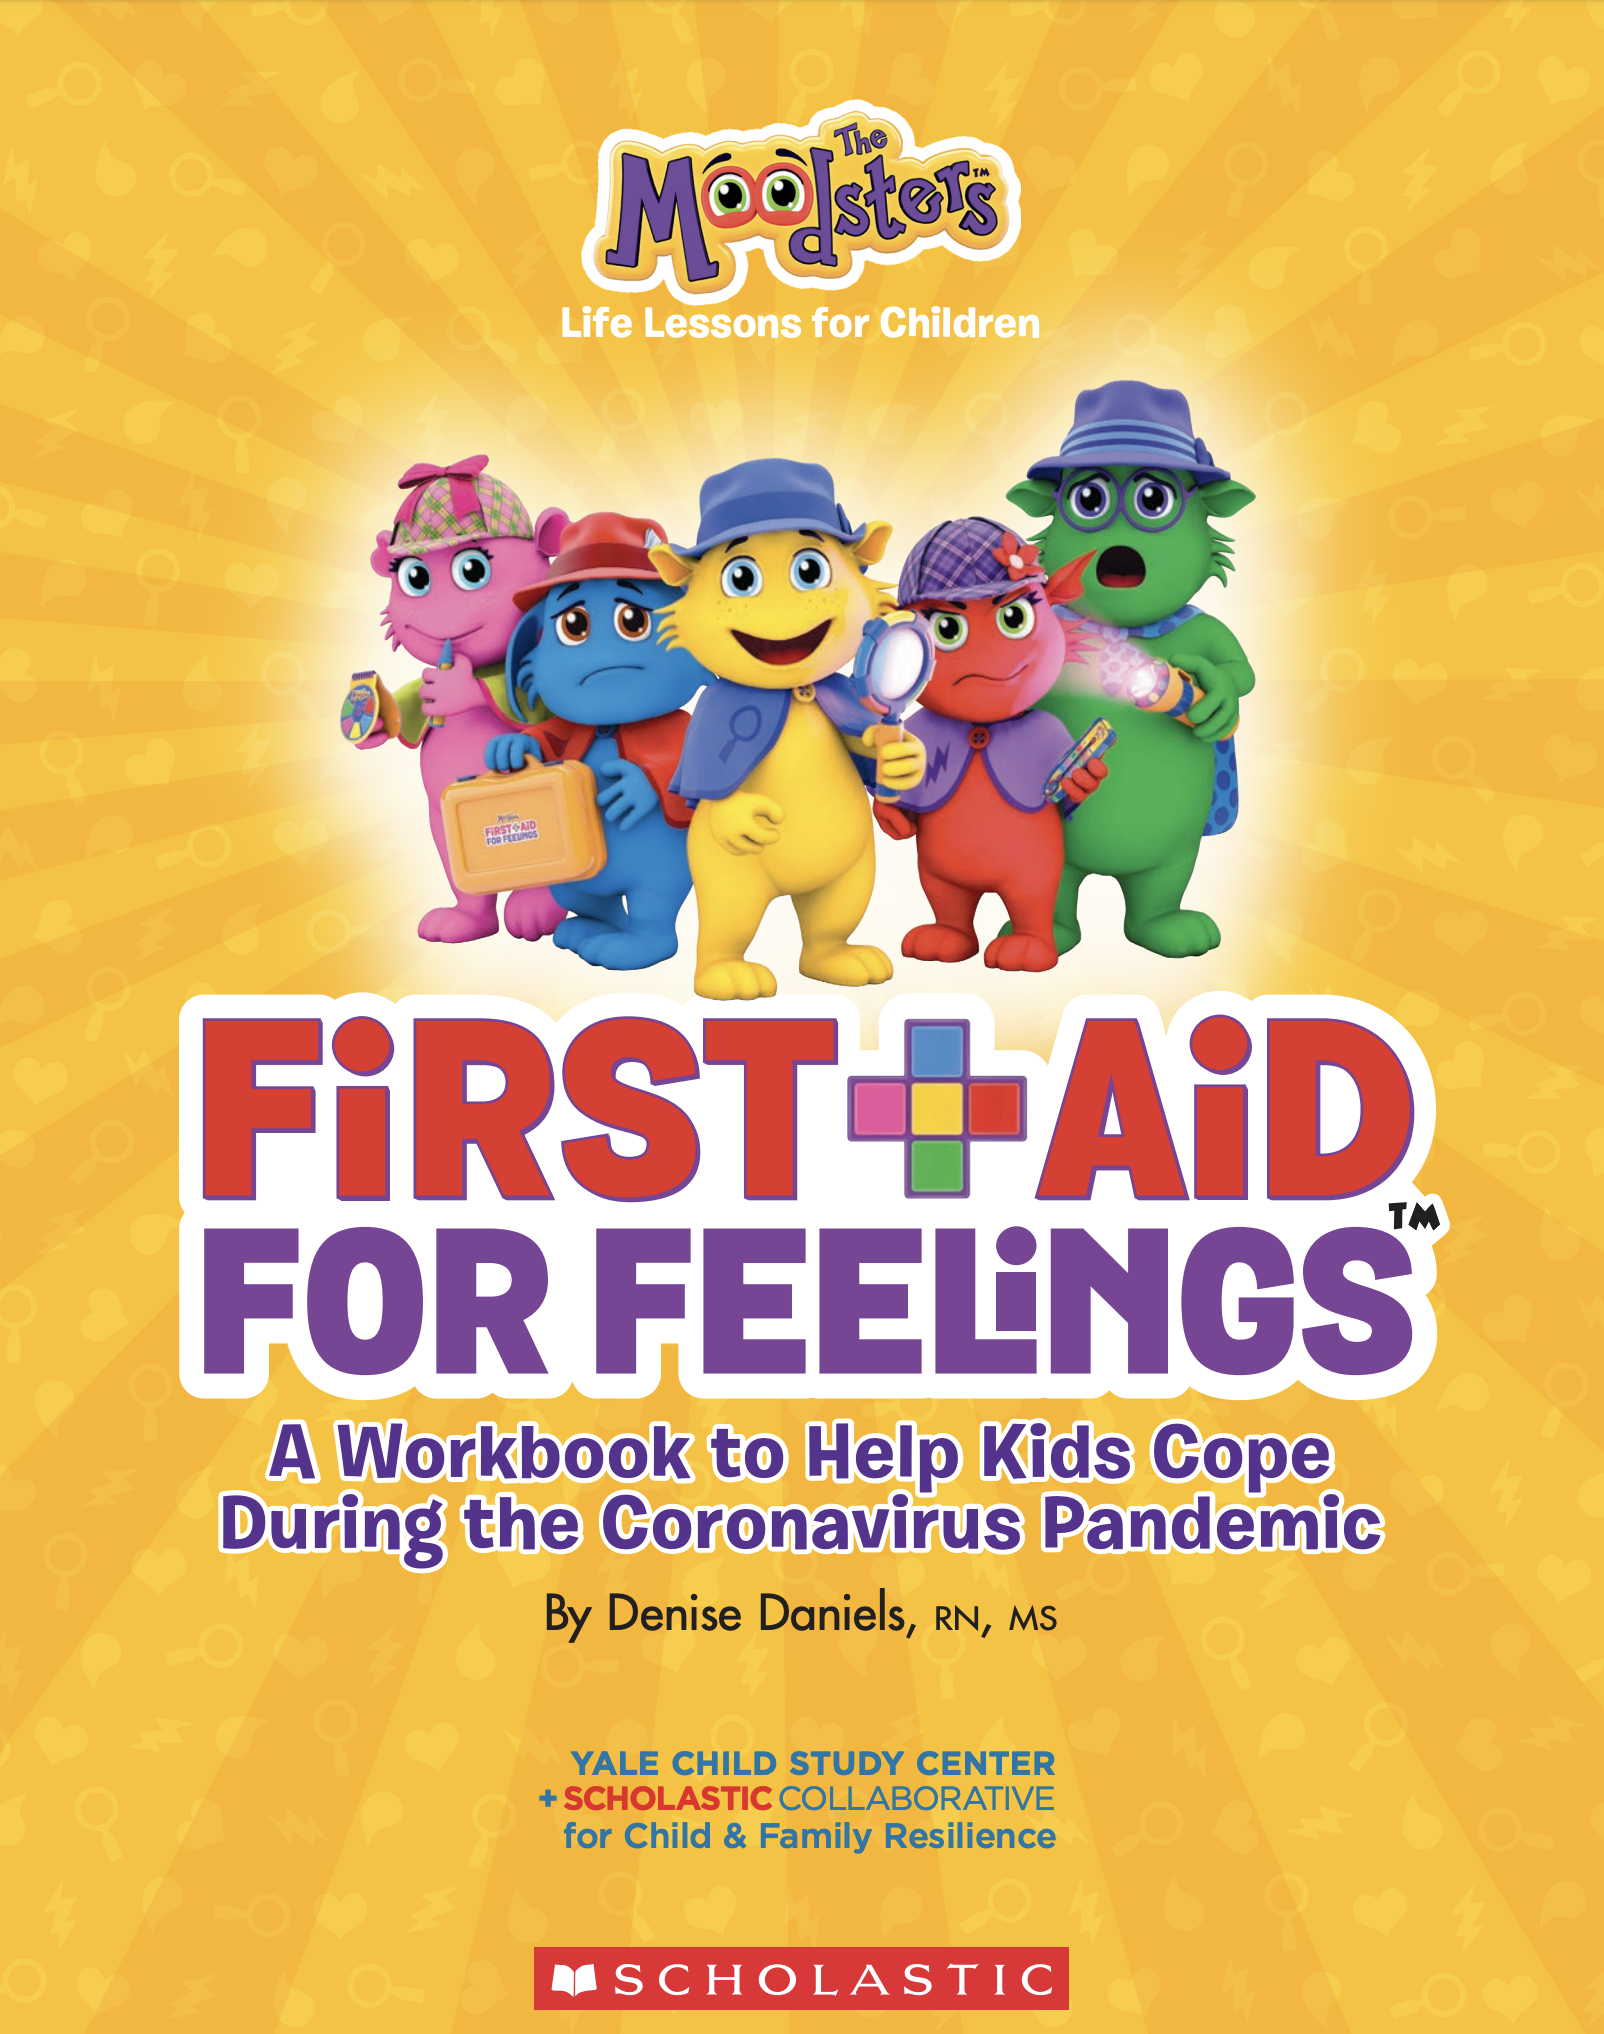 First-Aid For Feelings: A Workbook to Help Kids Cope During the Coronavirus Pandemic